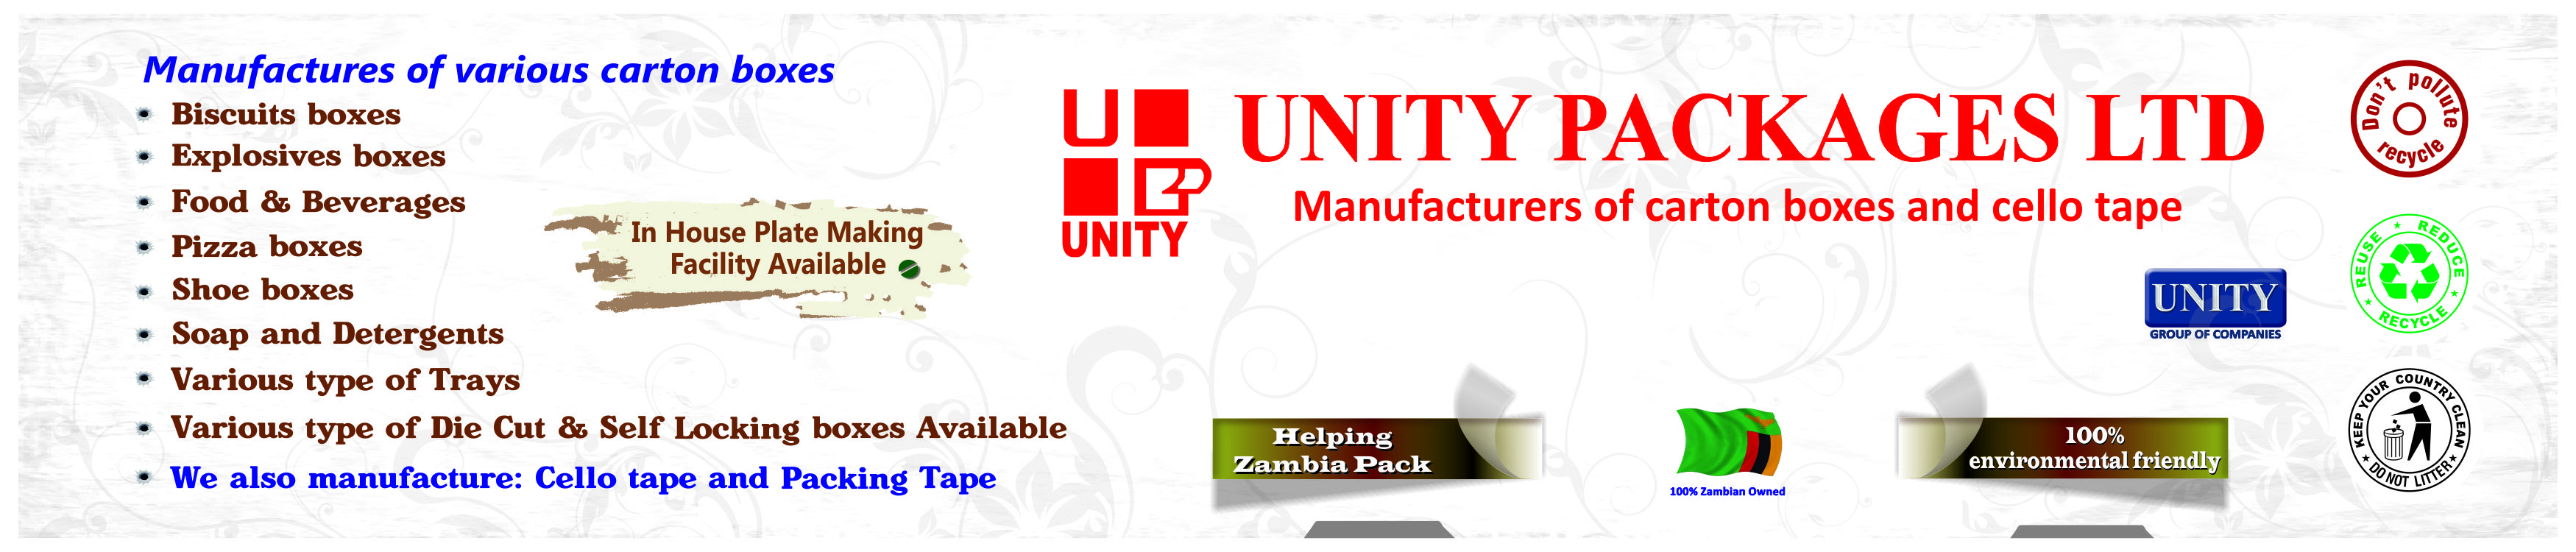 UNITY CONTAINER ADVERT - 1